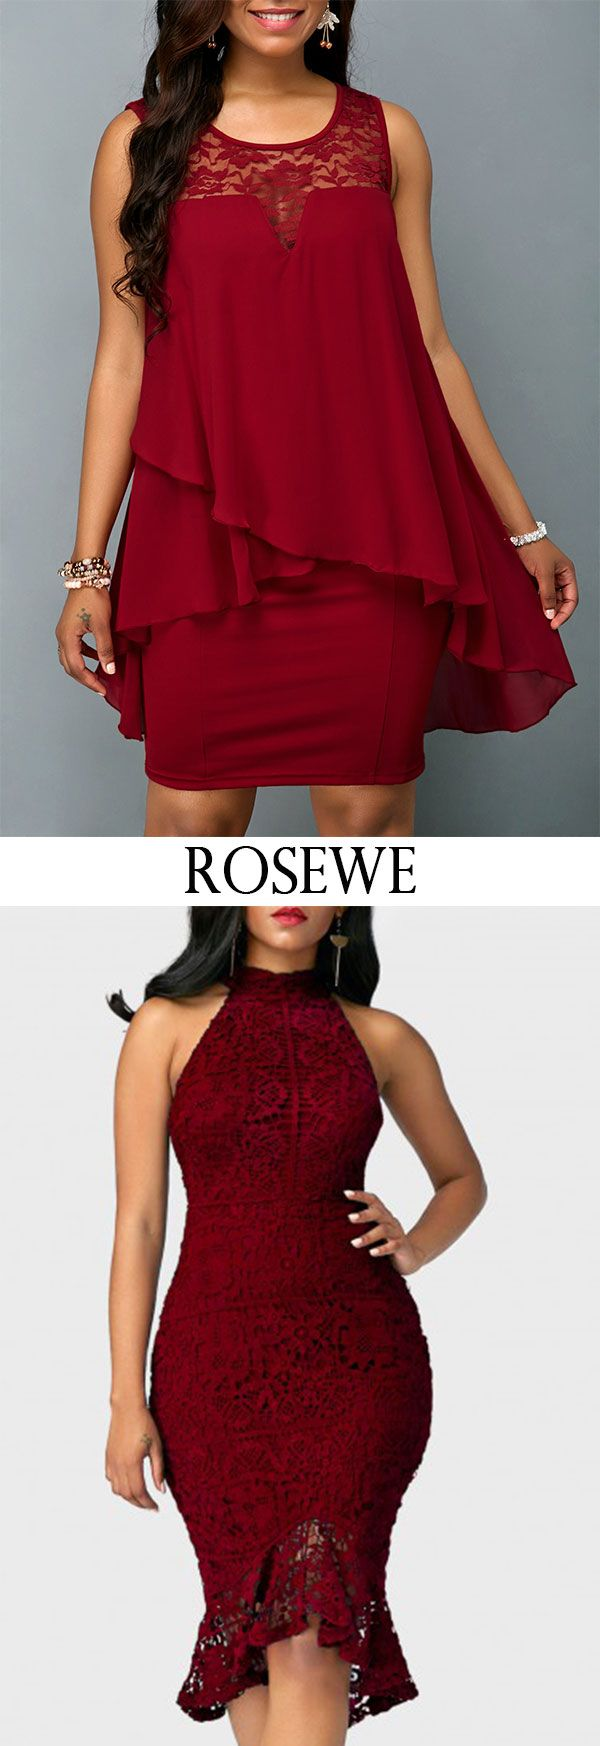 8e9bf7f5b4f Wine Red Overlay Embellished Lace Panel Chiffon Dress. Rosewe chiffon casualstyle